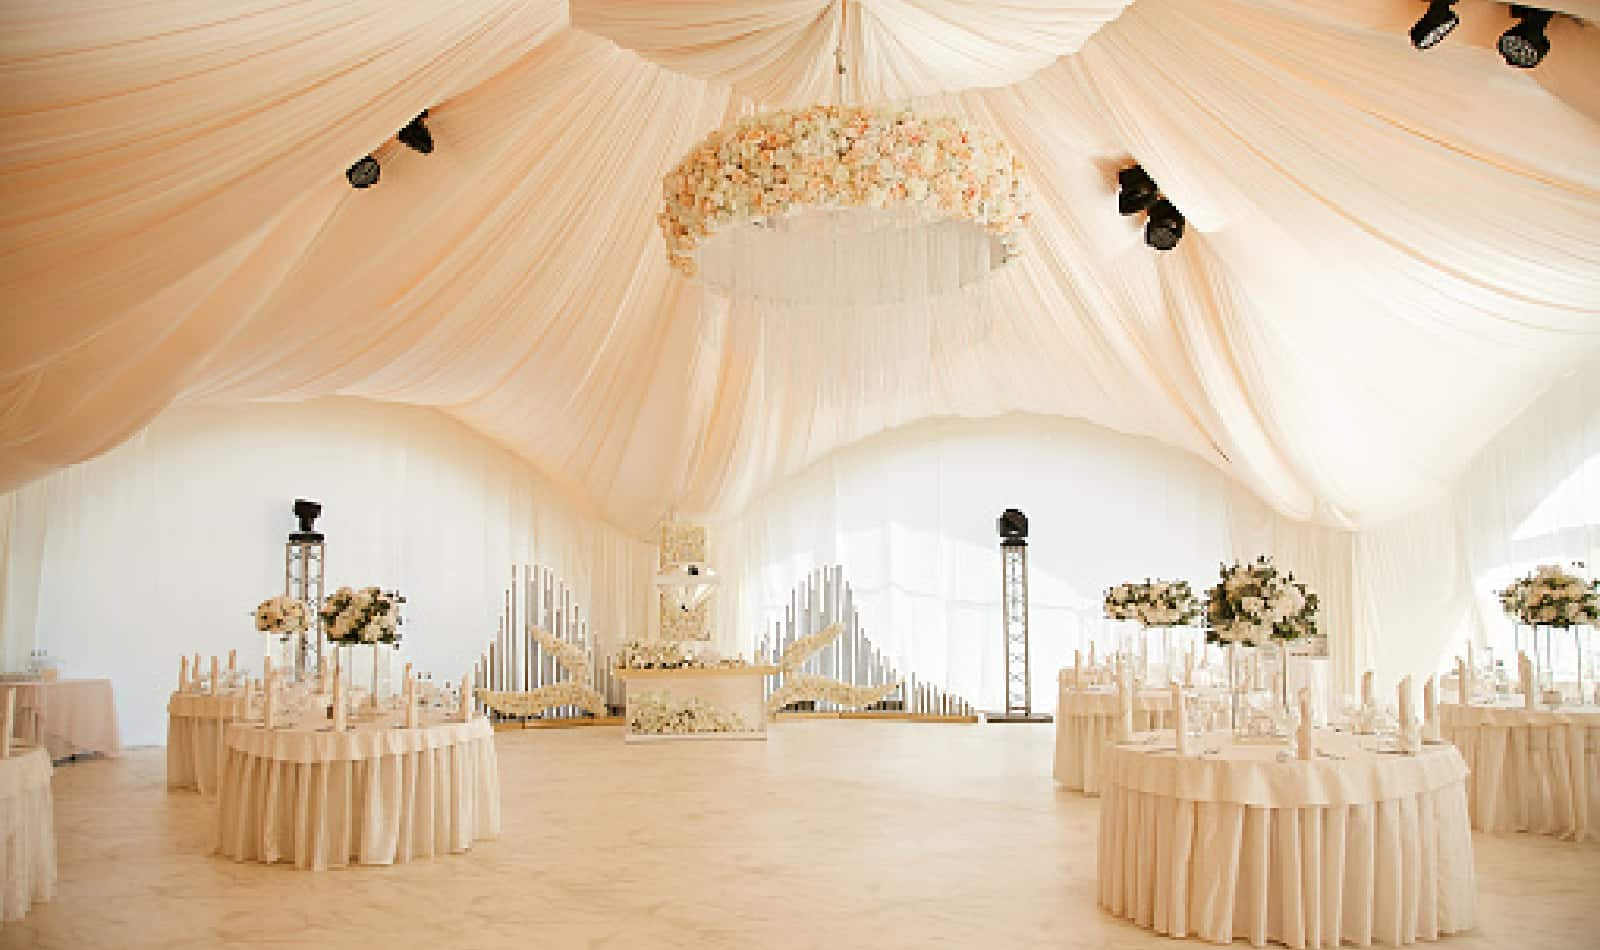 Luxurious high tent decorated for wedding celebration